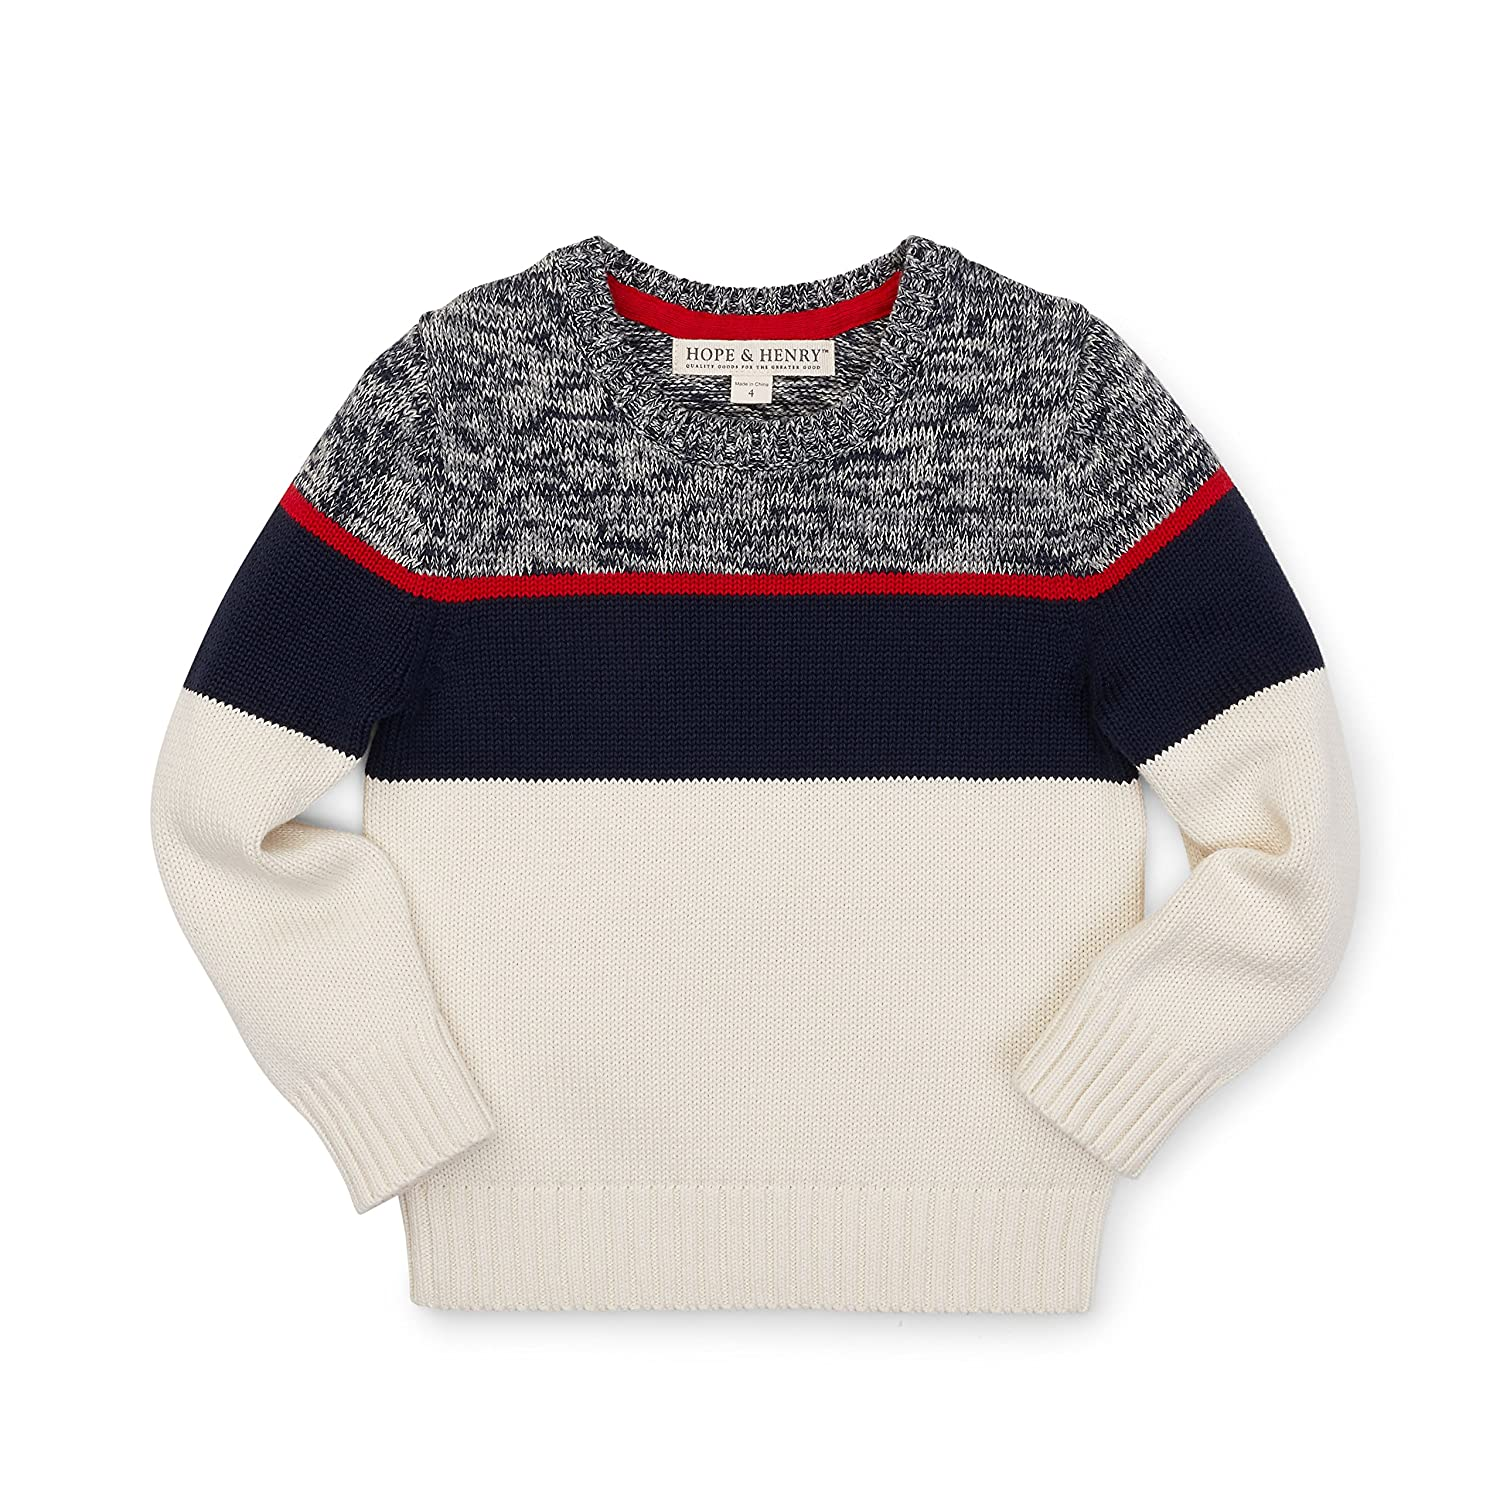 Hope & Henry Boys' Navy Crew Neck Marled Sweater Made with Organic Cotton